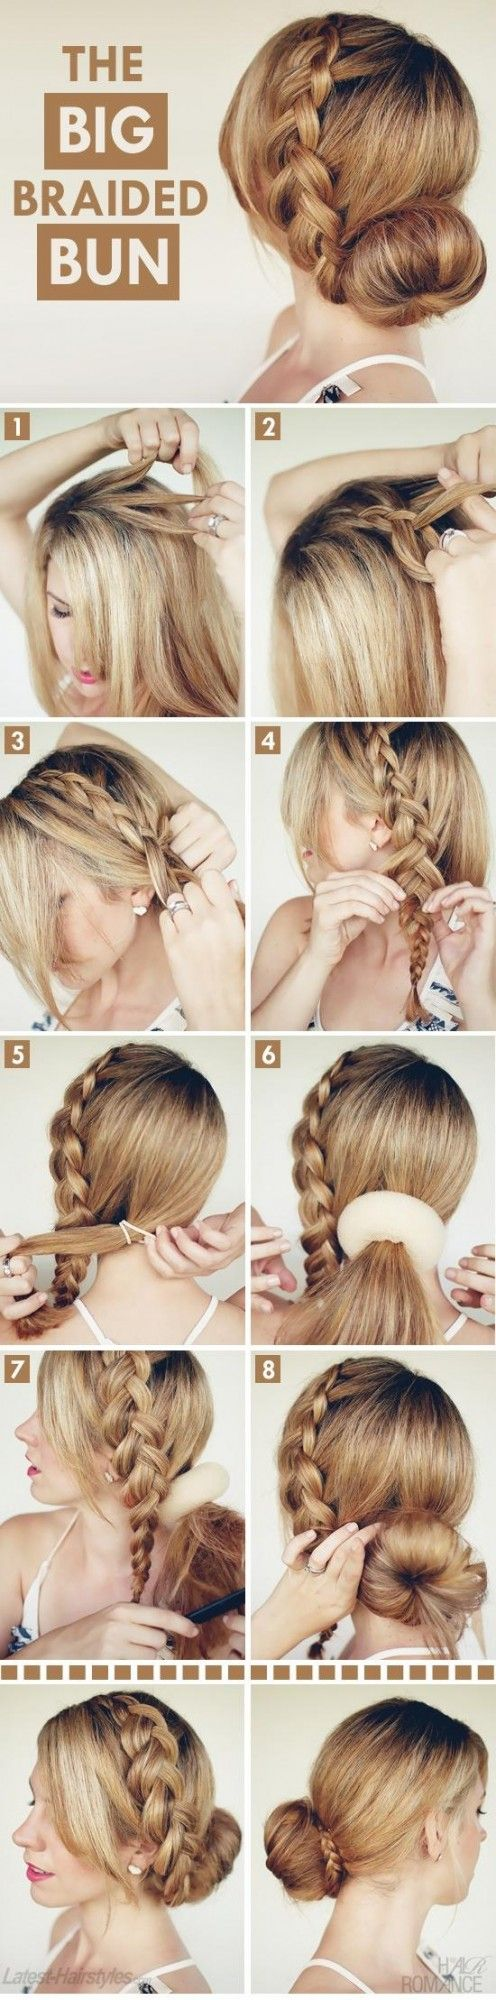 amazing and easy hairstyles tutorials for hot summer days easy